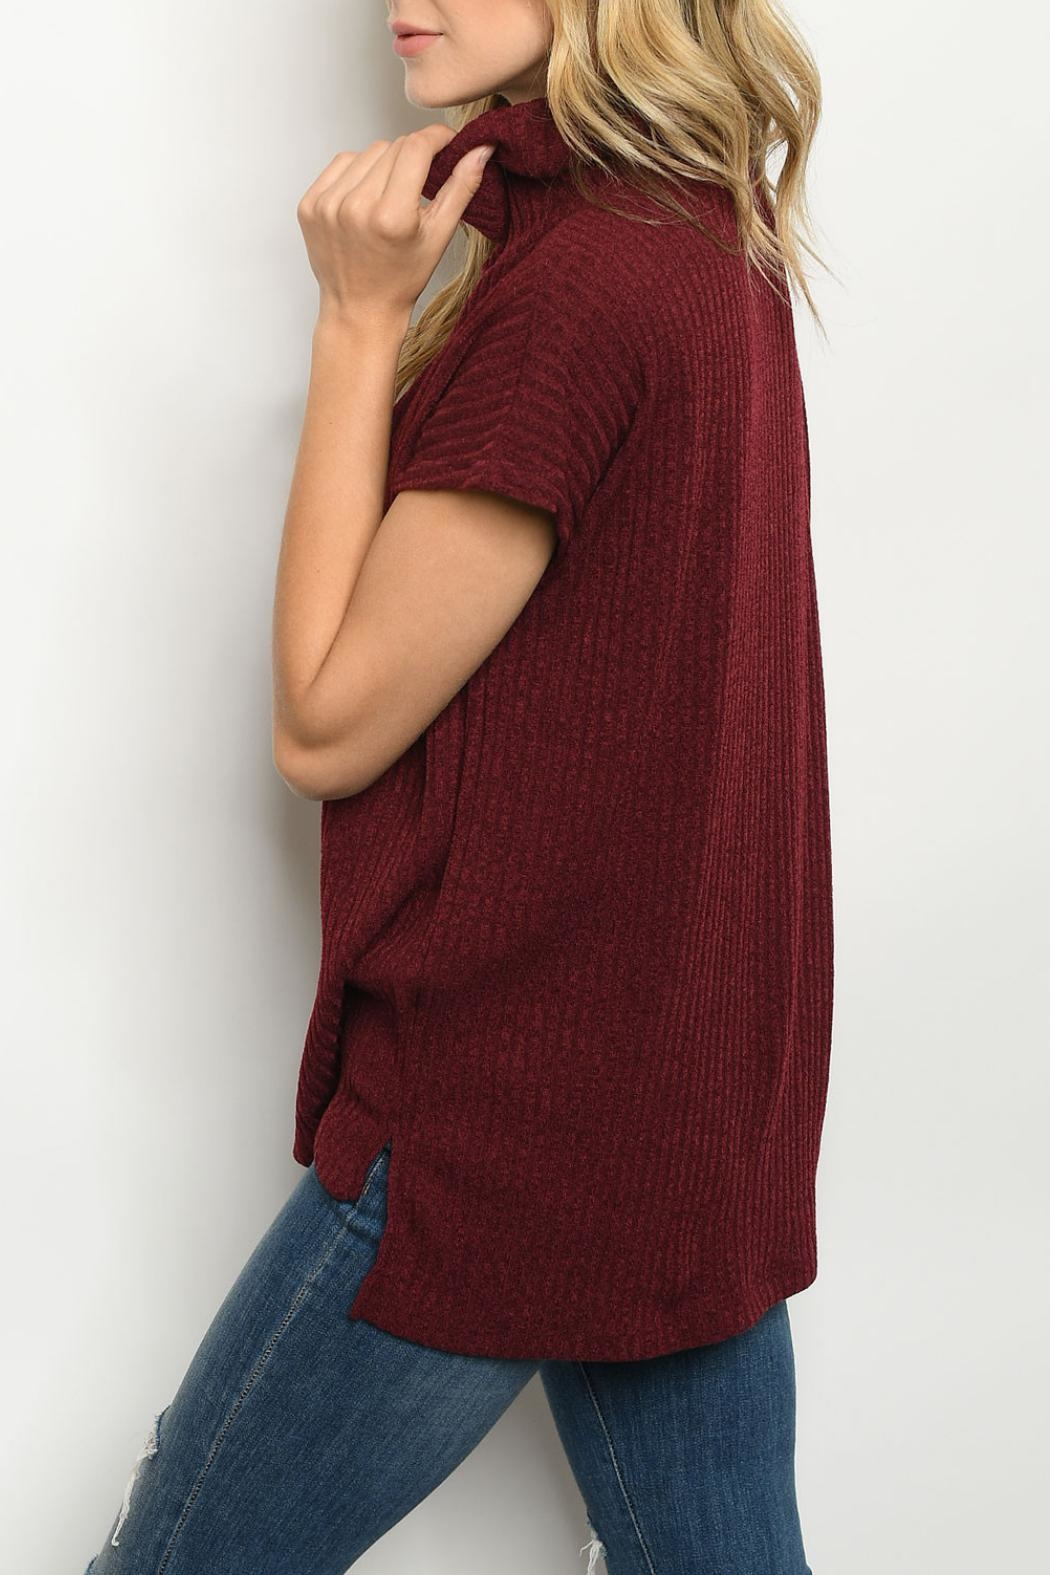 Ginger G Burgundy Cowl-Neck Top - Front Full Image